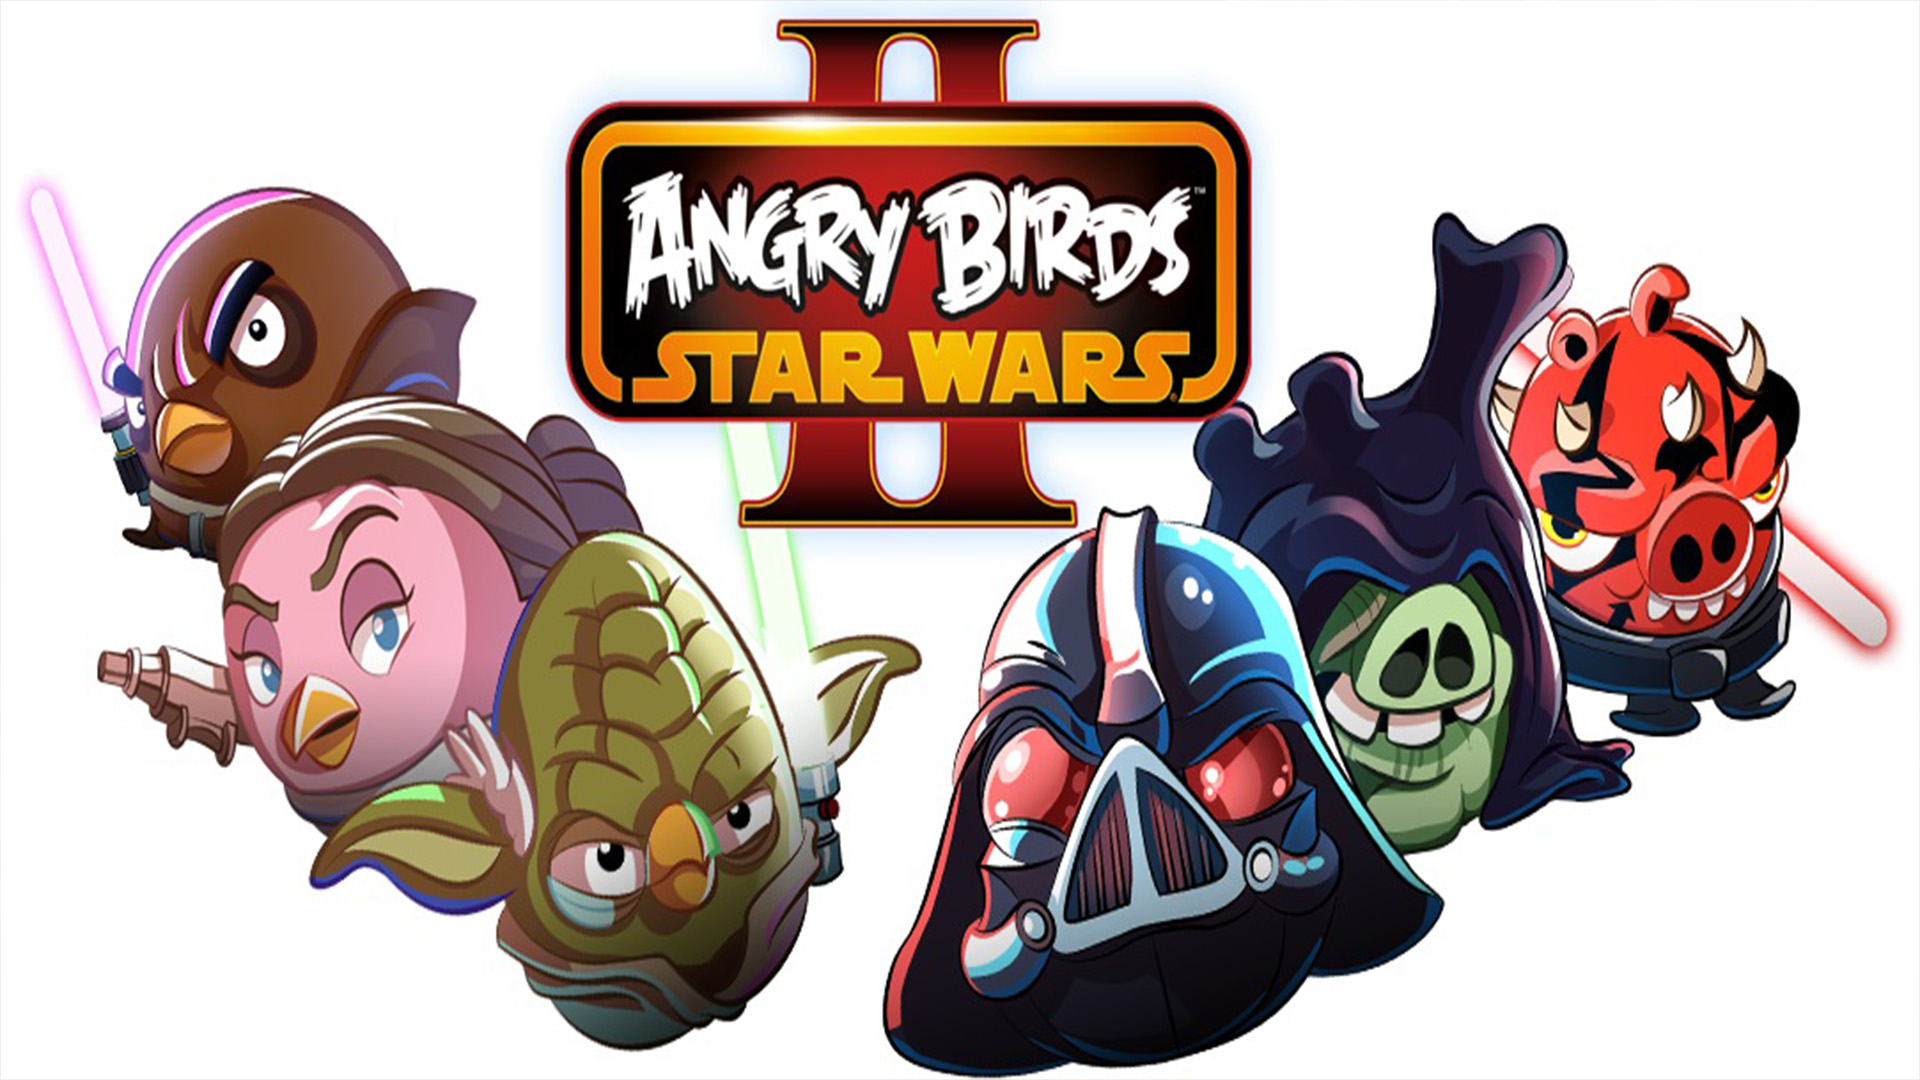 angry birds star wars 2 details launchbox games database